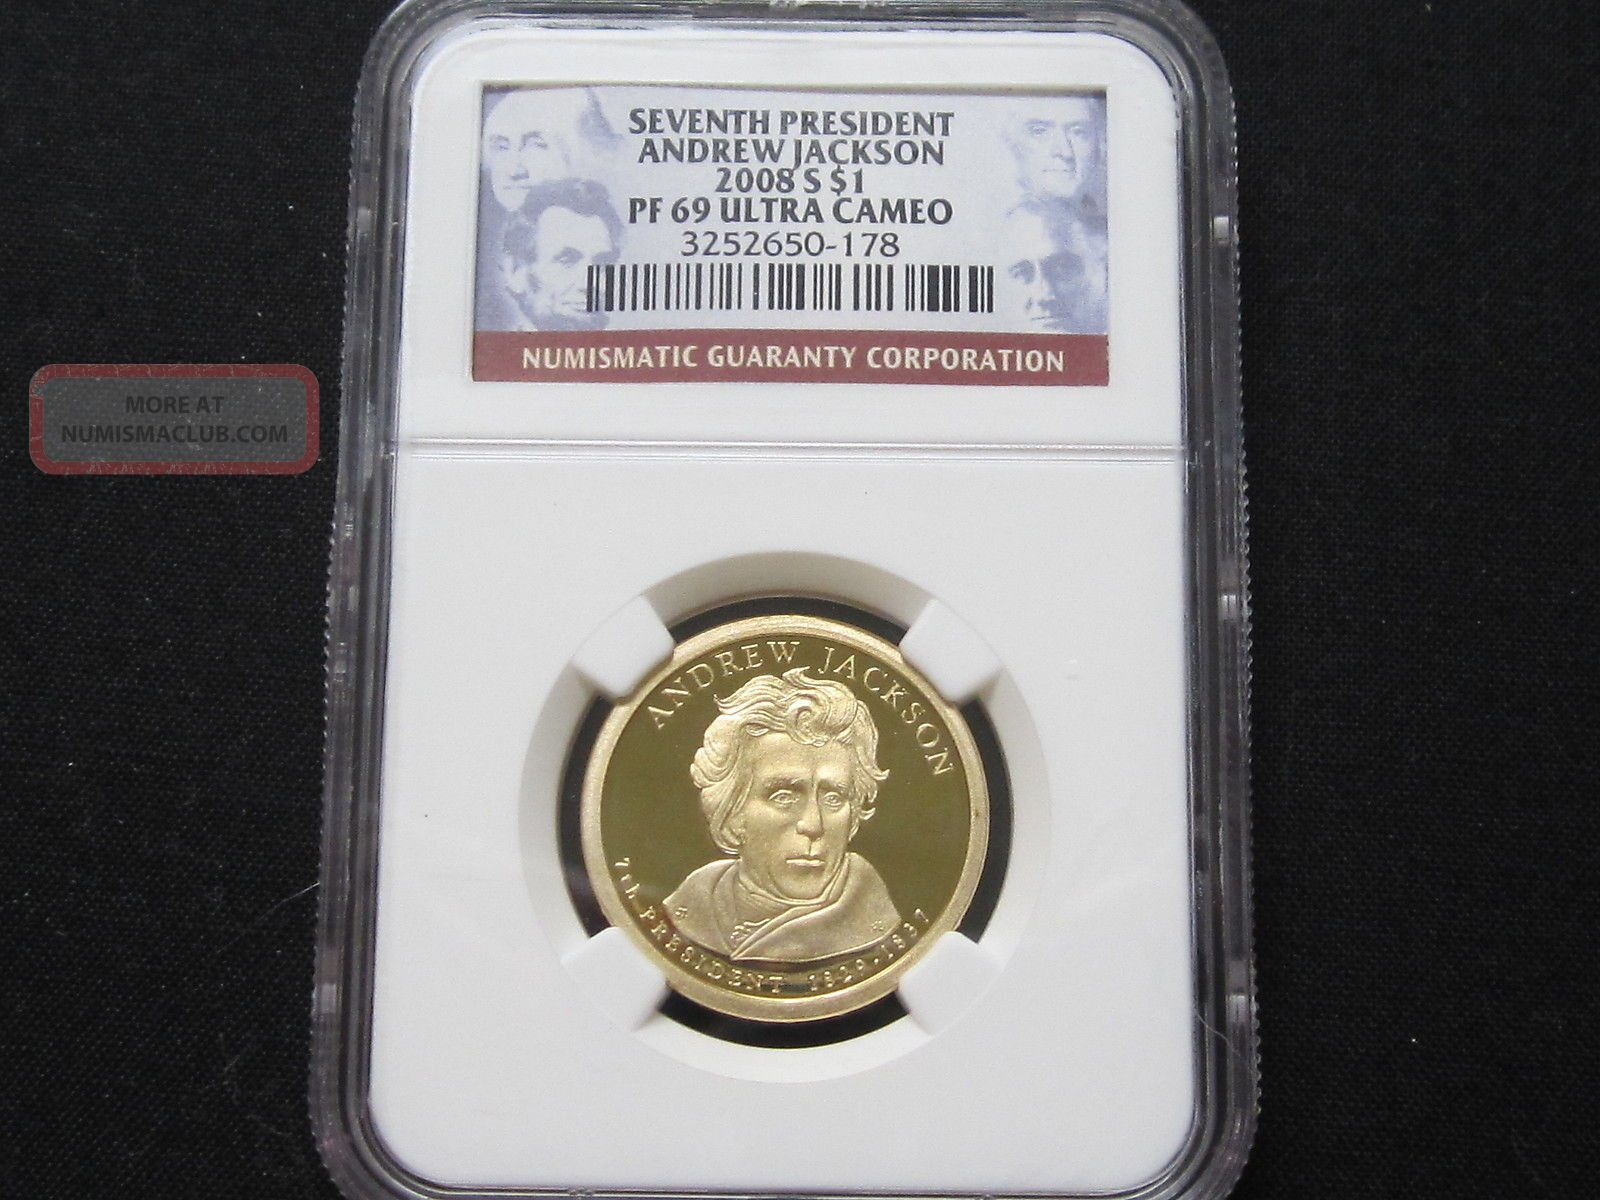 2008 S Proof Andrew Jackson Presidential Dollar - Ngc Pf 69 Ultra Cameo (178) Dollars photo